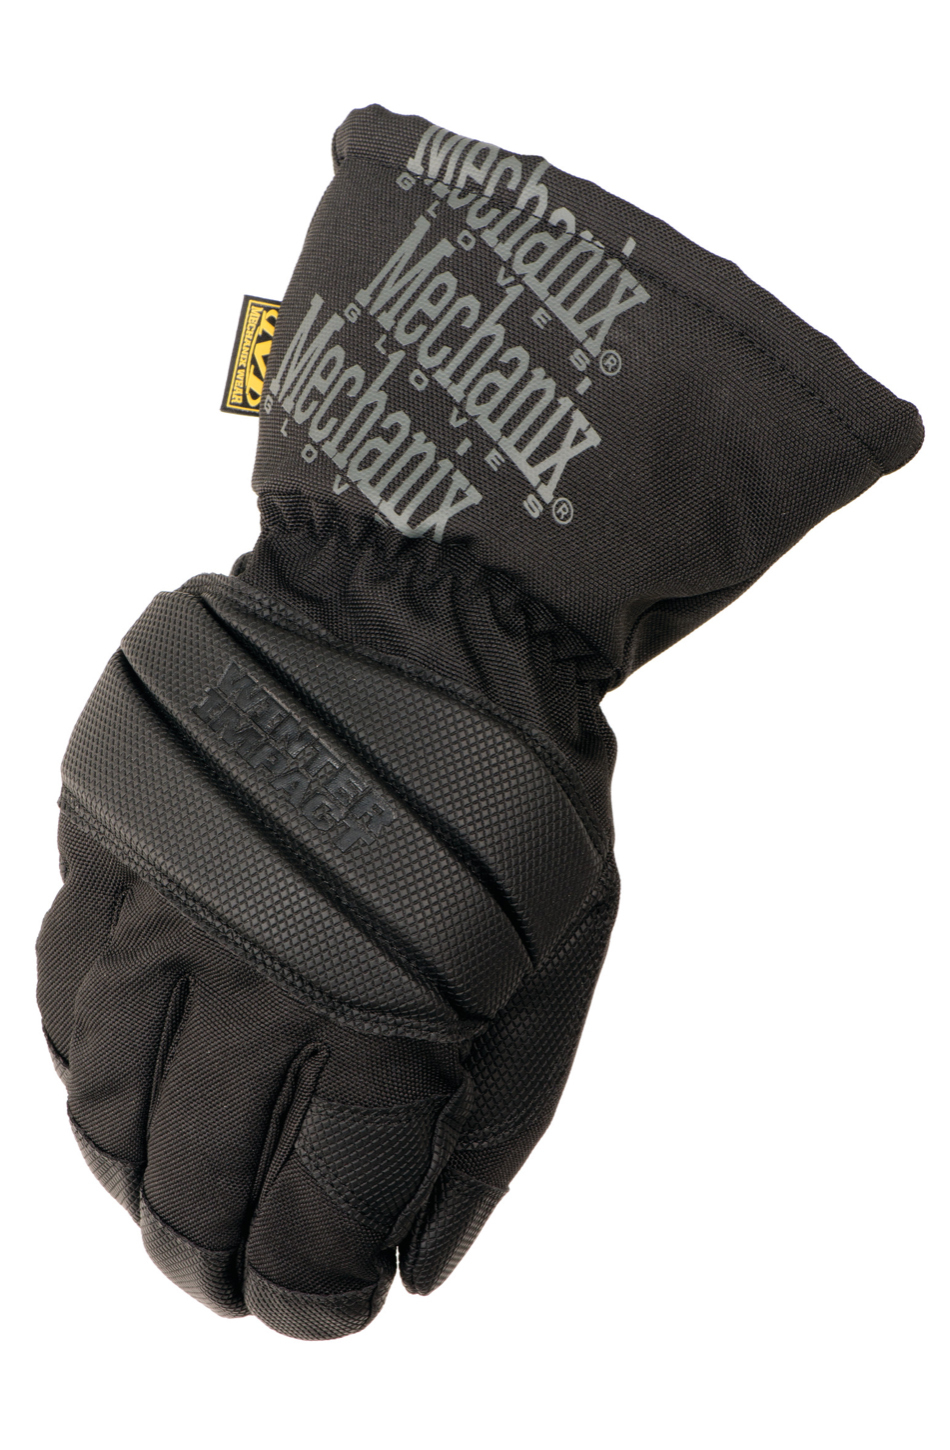 Mechanix Wear MCW-WI-012 Gloves, Shop, Winter Impact Gen 2, Gauntlet Style, Insulated, Black / Gray, 2X-Large, Pair